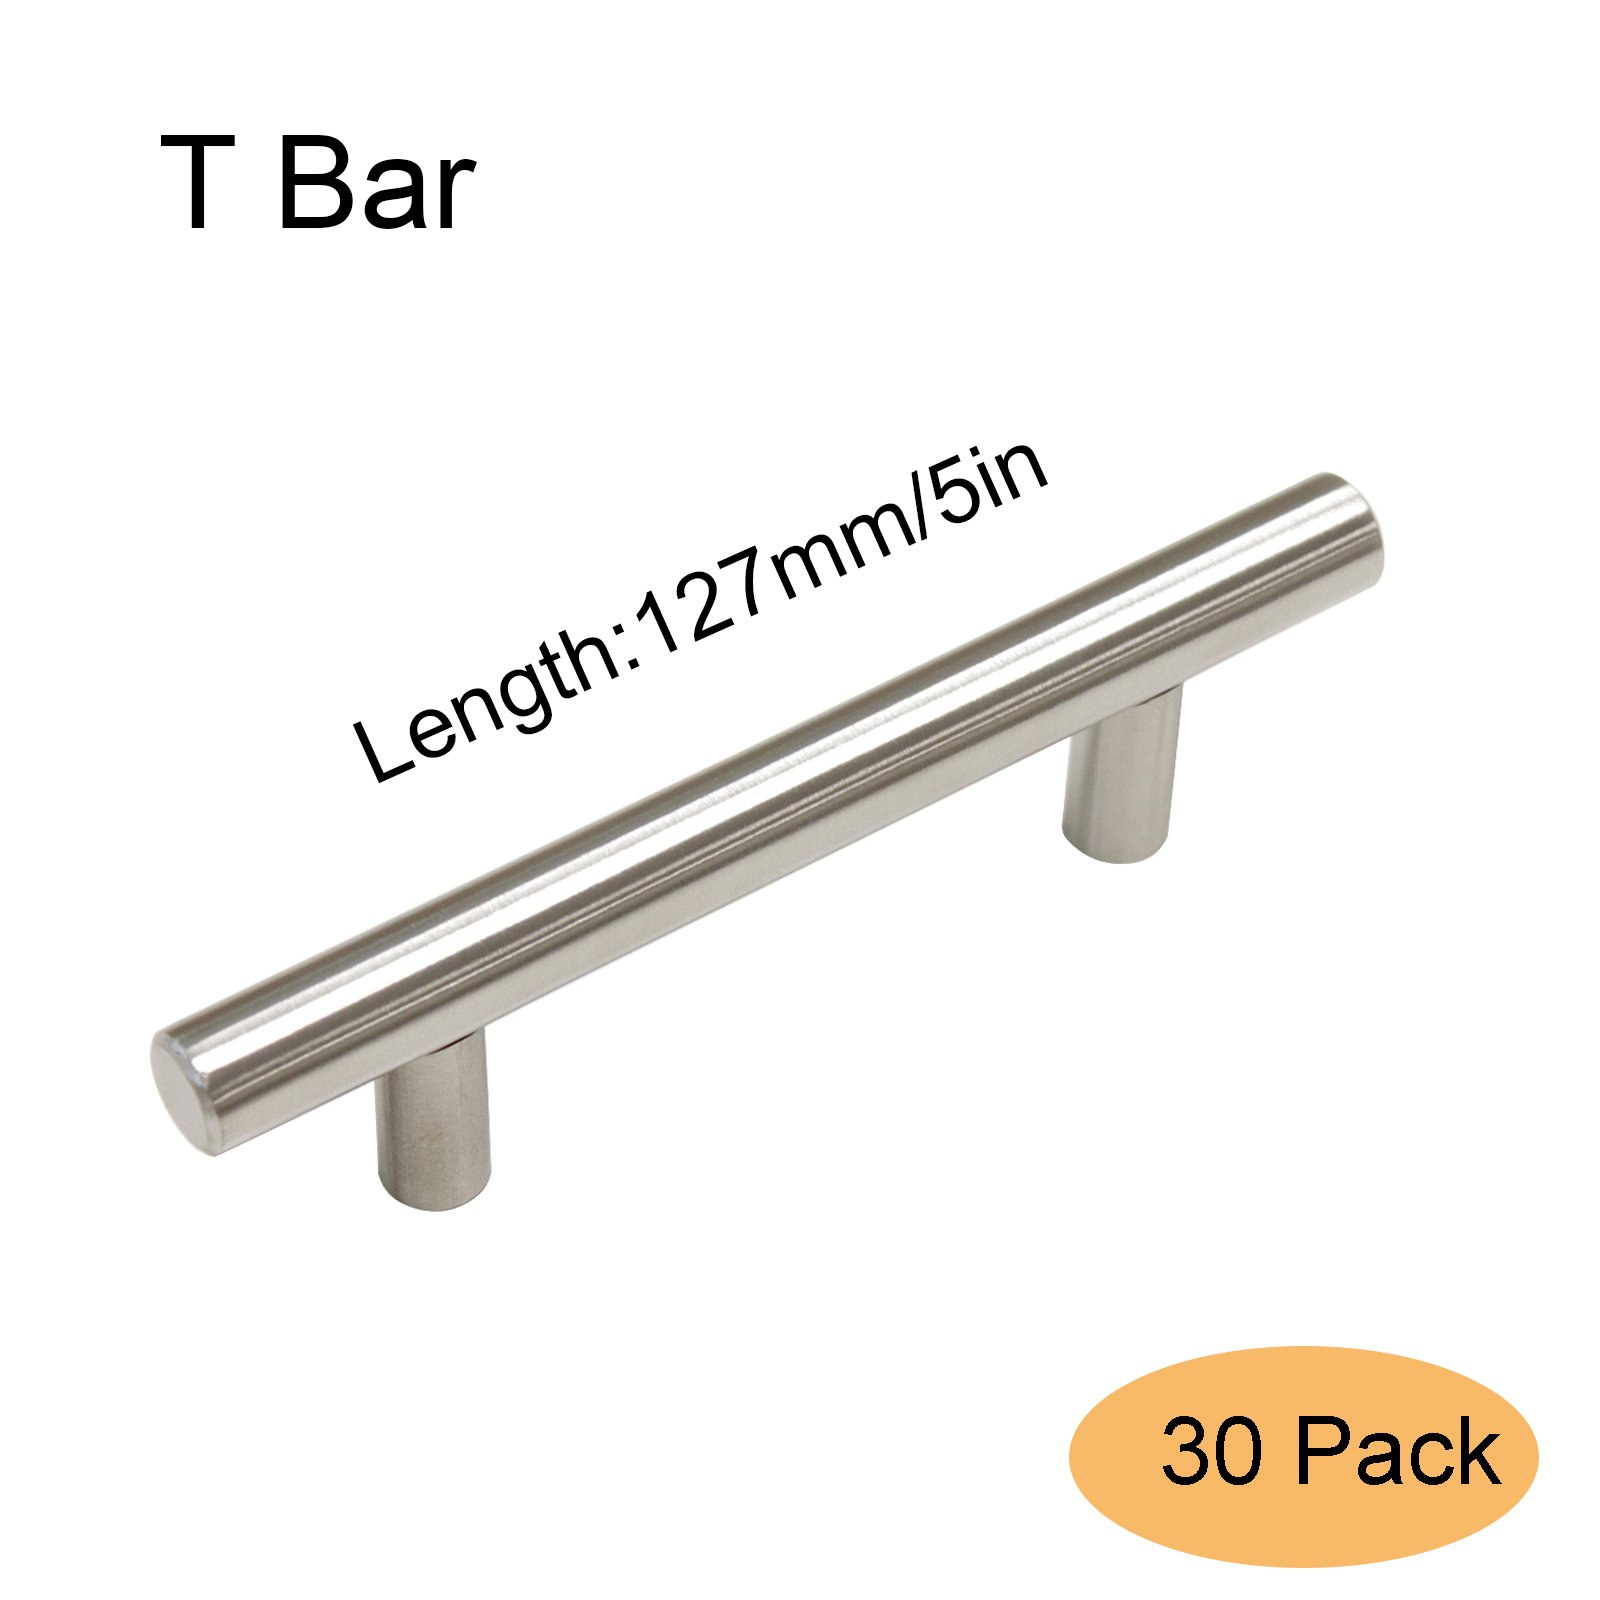 Gobrico Brushed Stainless Steel T Bar Door Handles Knobs 5in Long Euro Style Kitchen Cabinet Drawer Pulls 30Pack by Gobrico